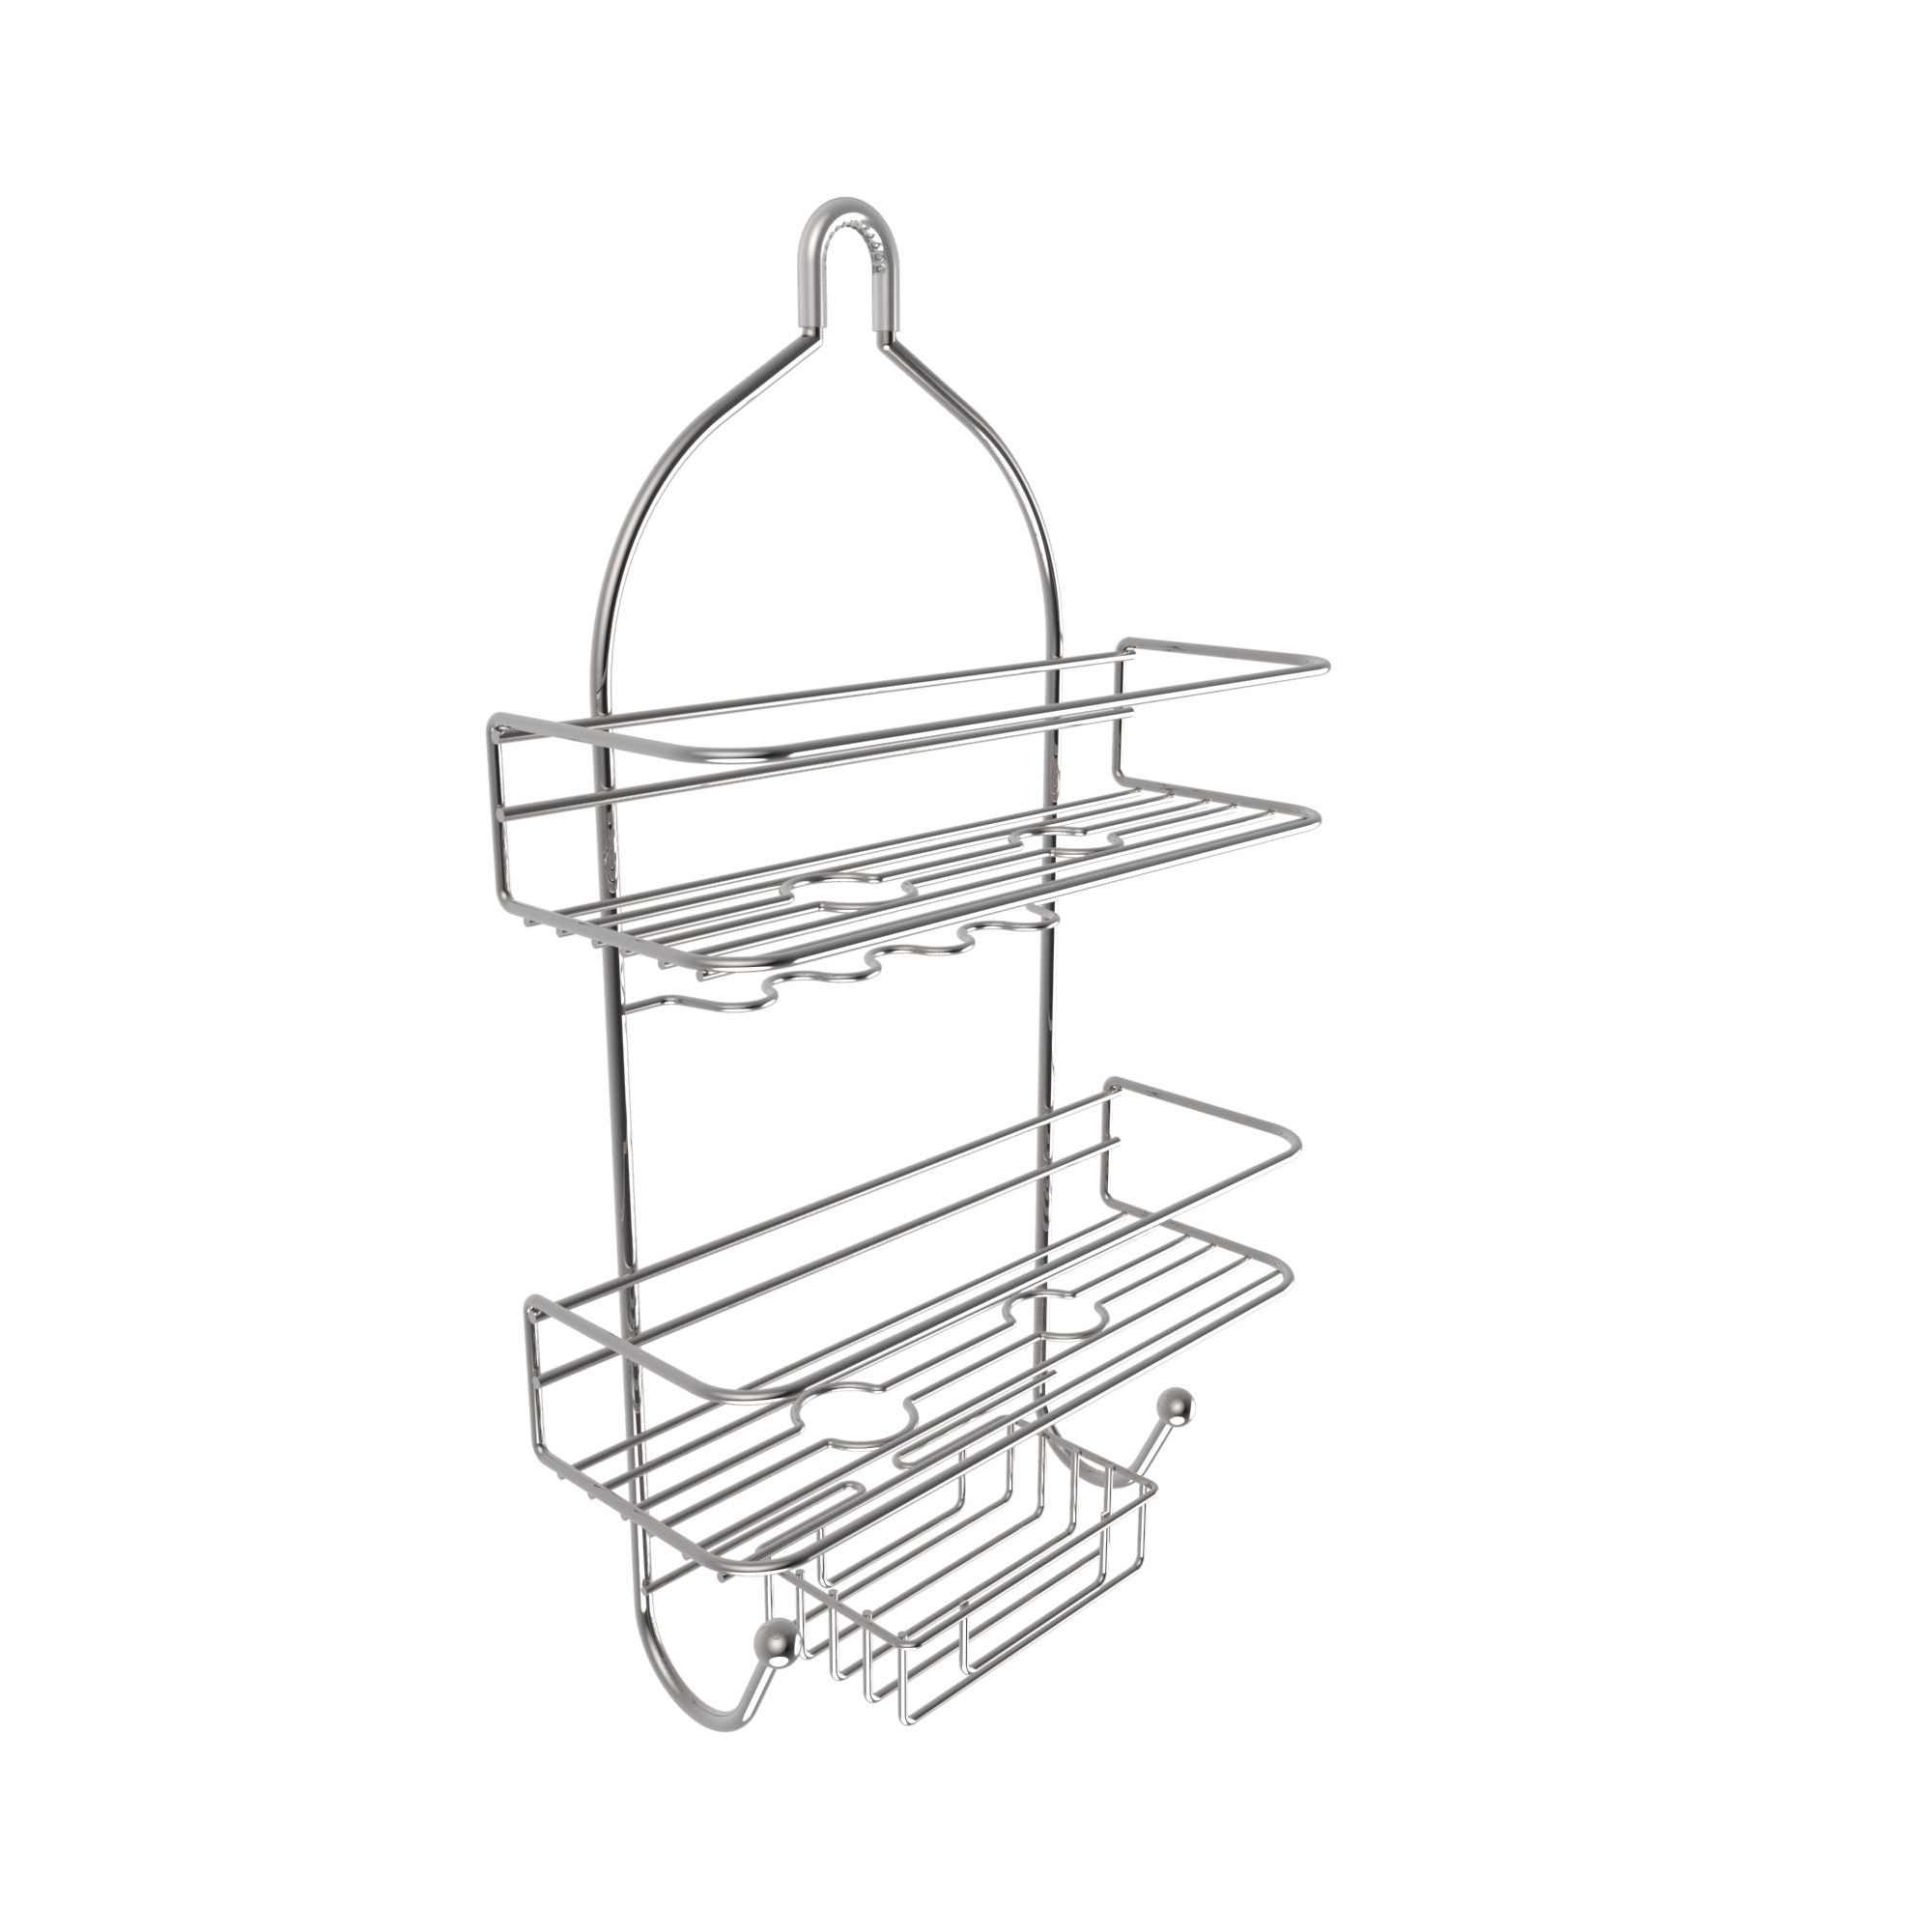 3-Tier Shower Caddy with Shelves and Hooks- Non Slip Grip Showerhead Bath Organizer with... by Trademark Global